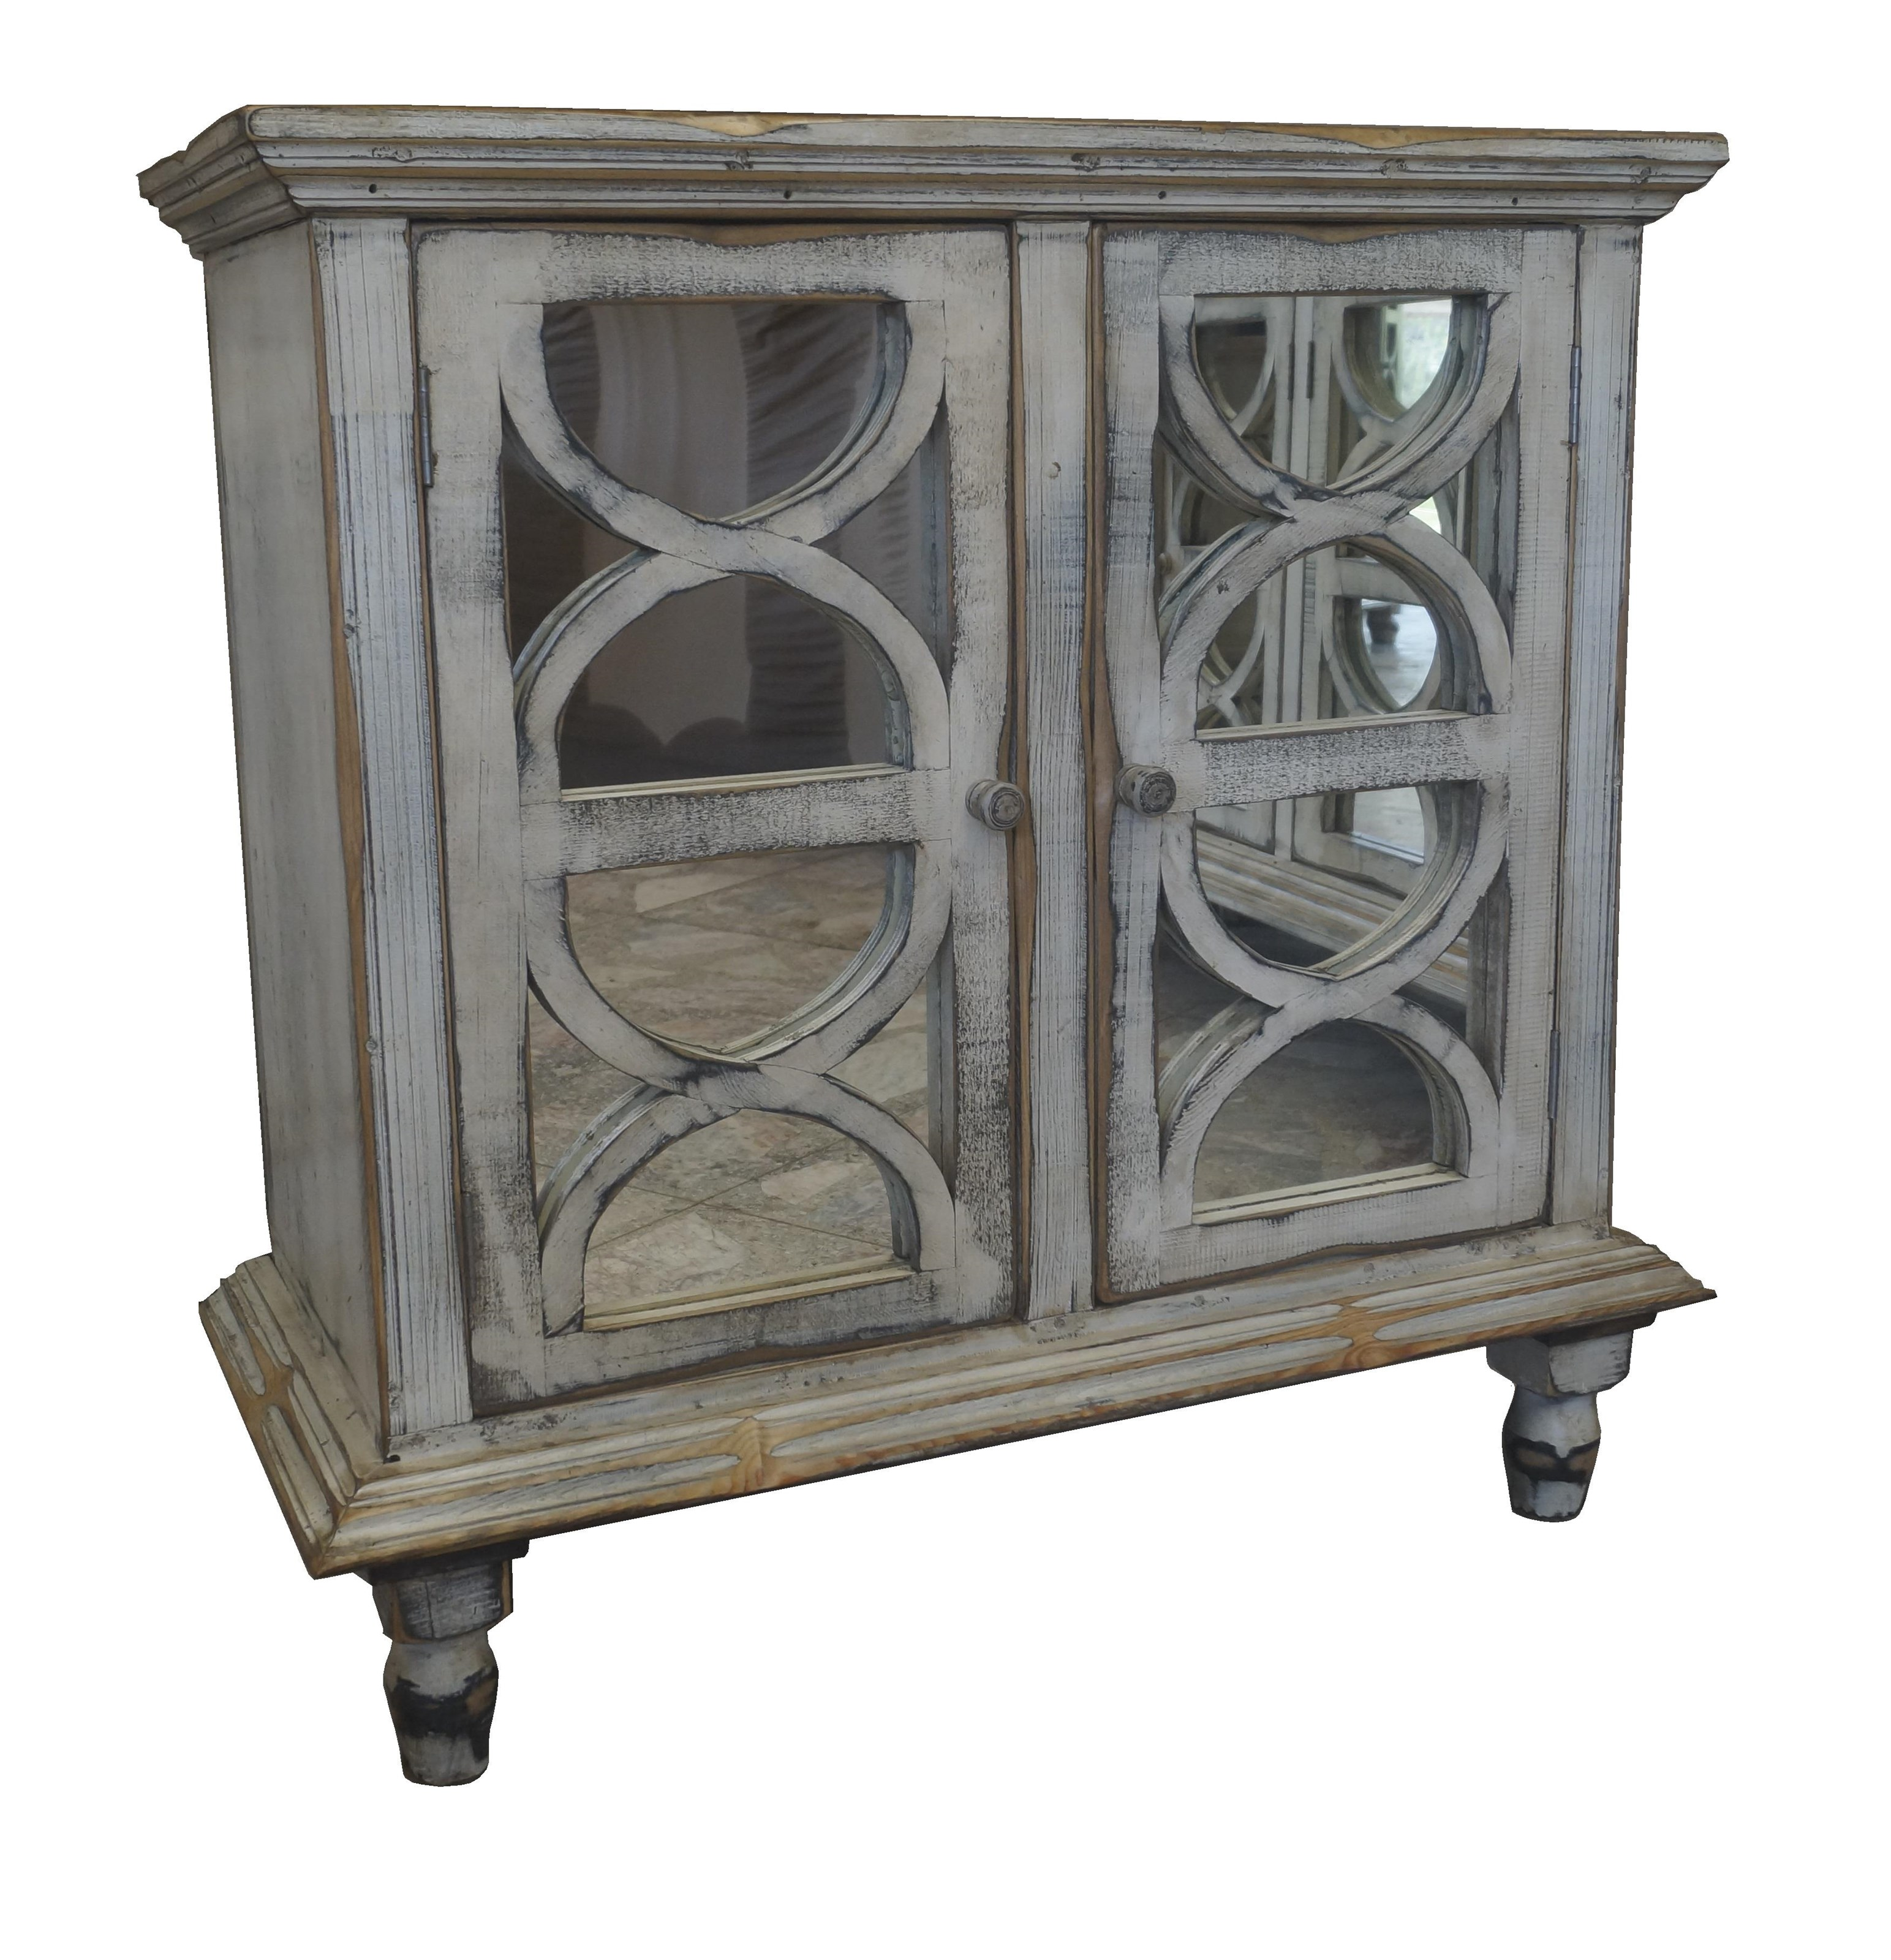 Furniture Source International Accent Pieces Bartlett Chest - Item Number: FSI-TH-175CHE